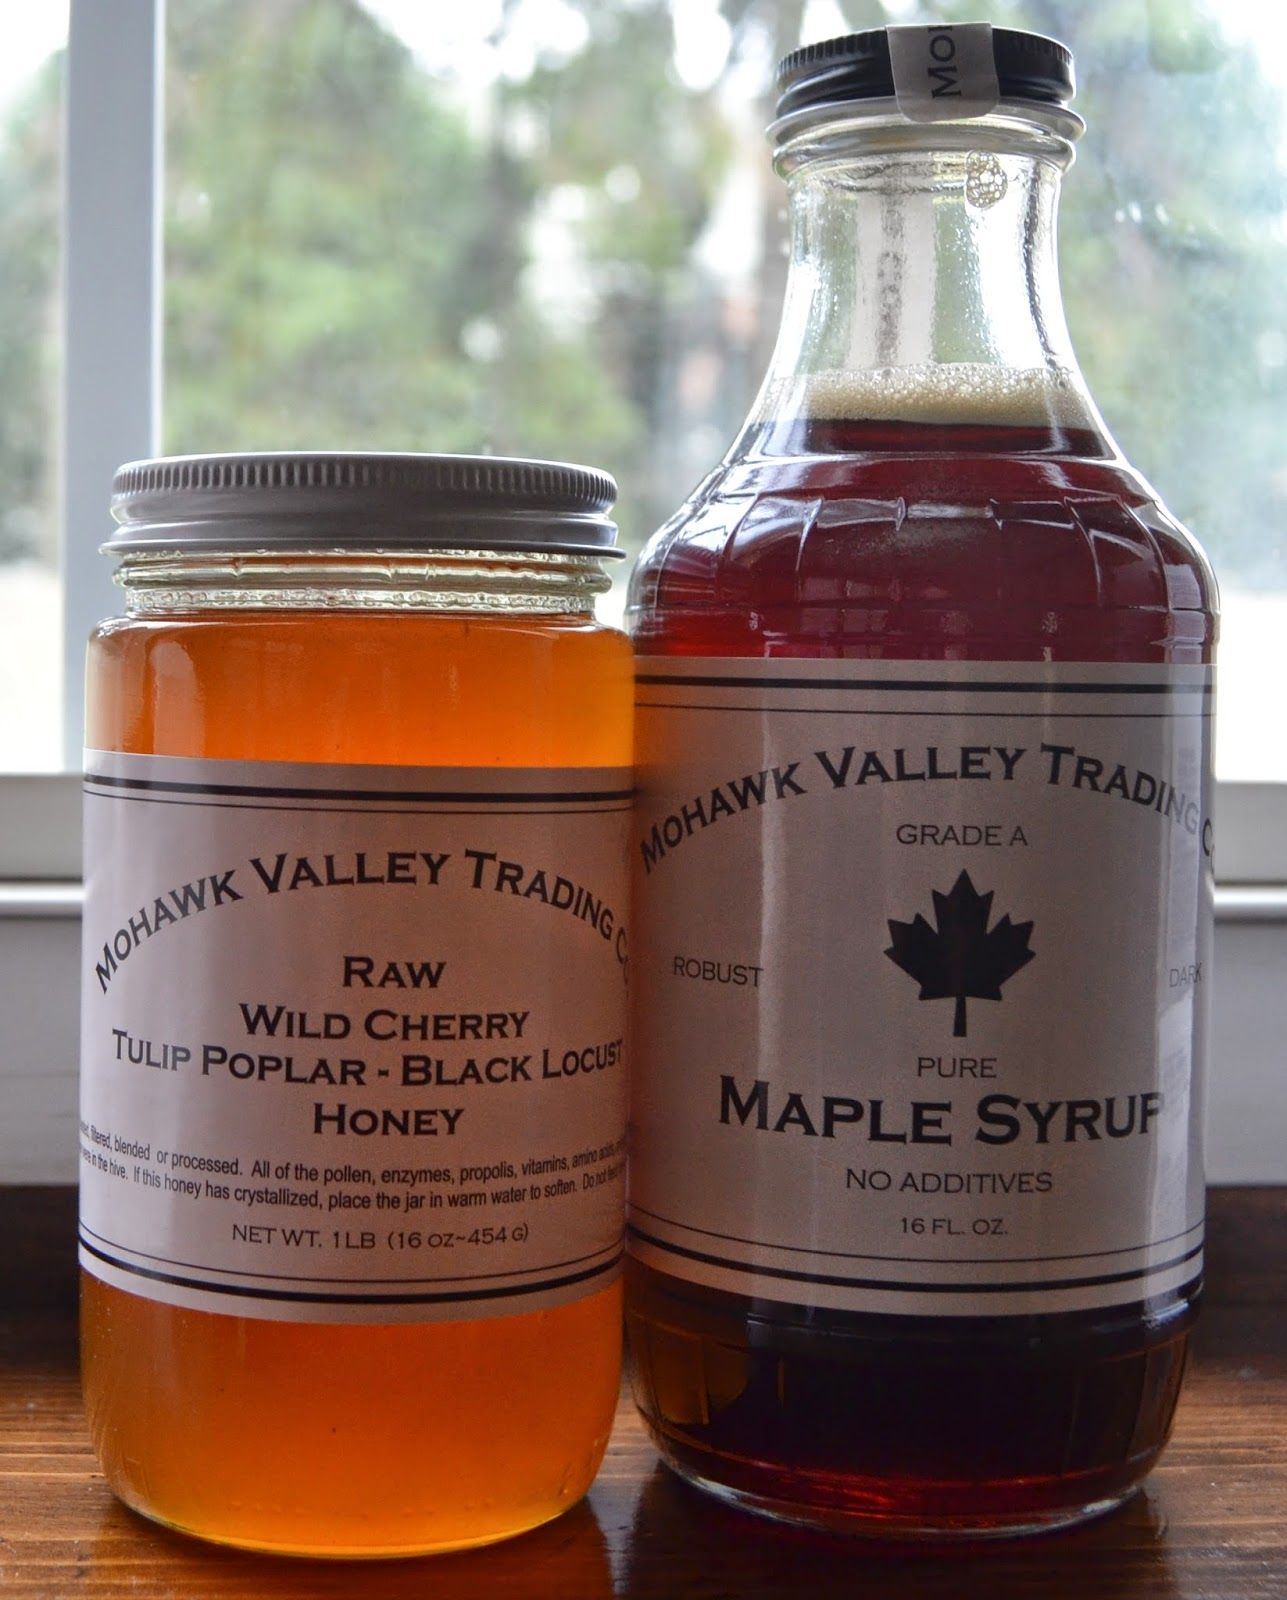 Mohawk Valley Trading Co. Honey and Maple Syrup